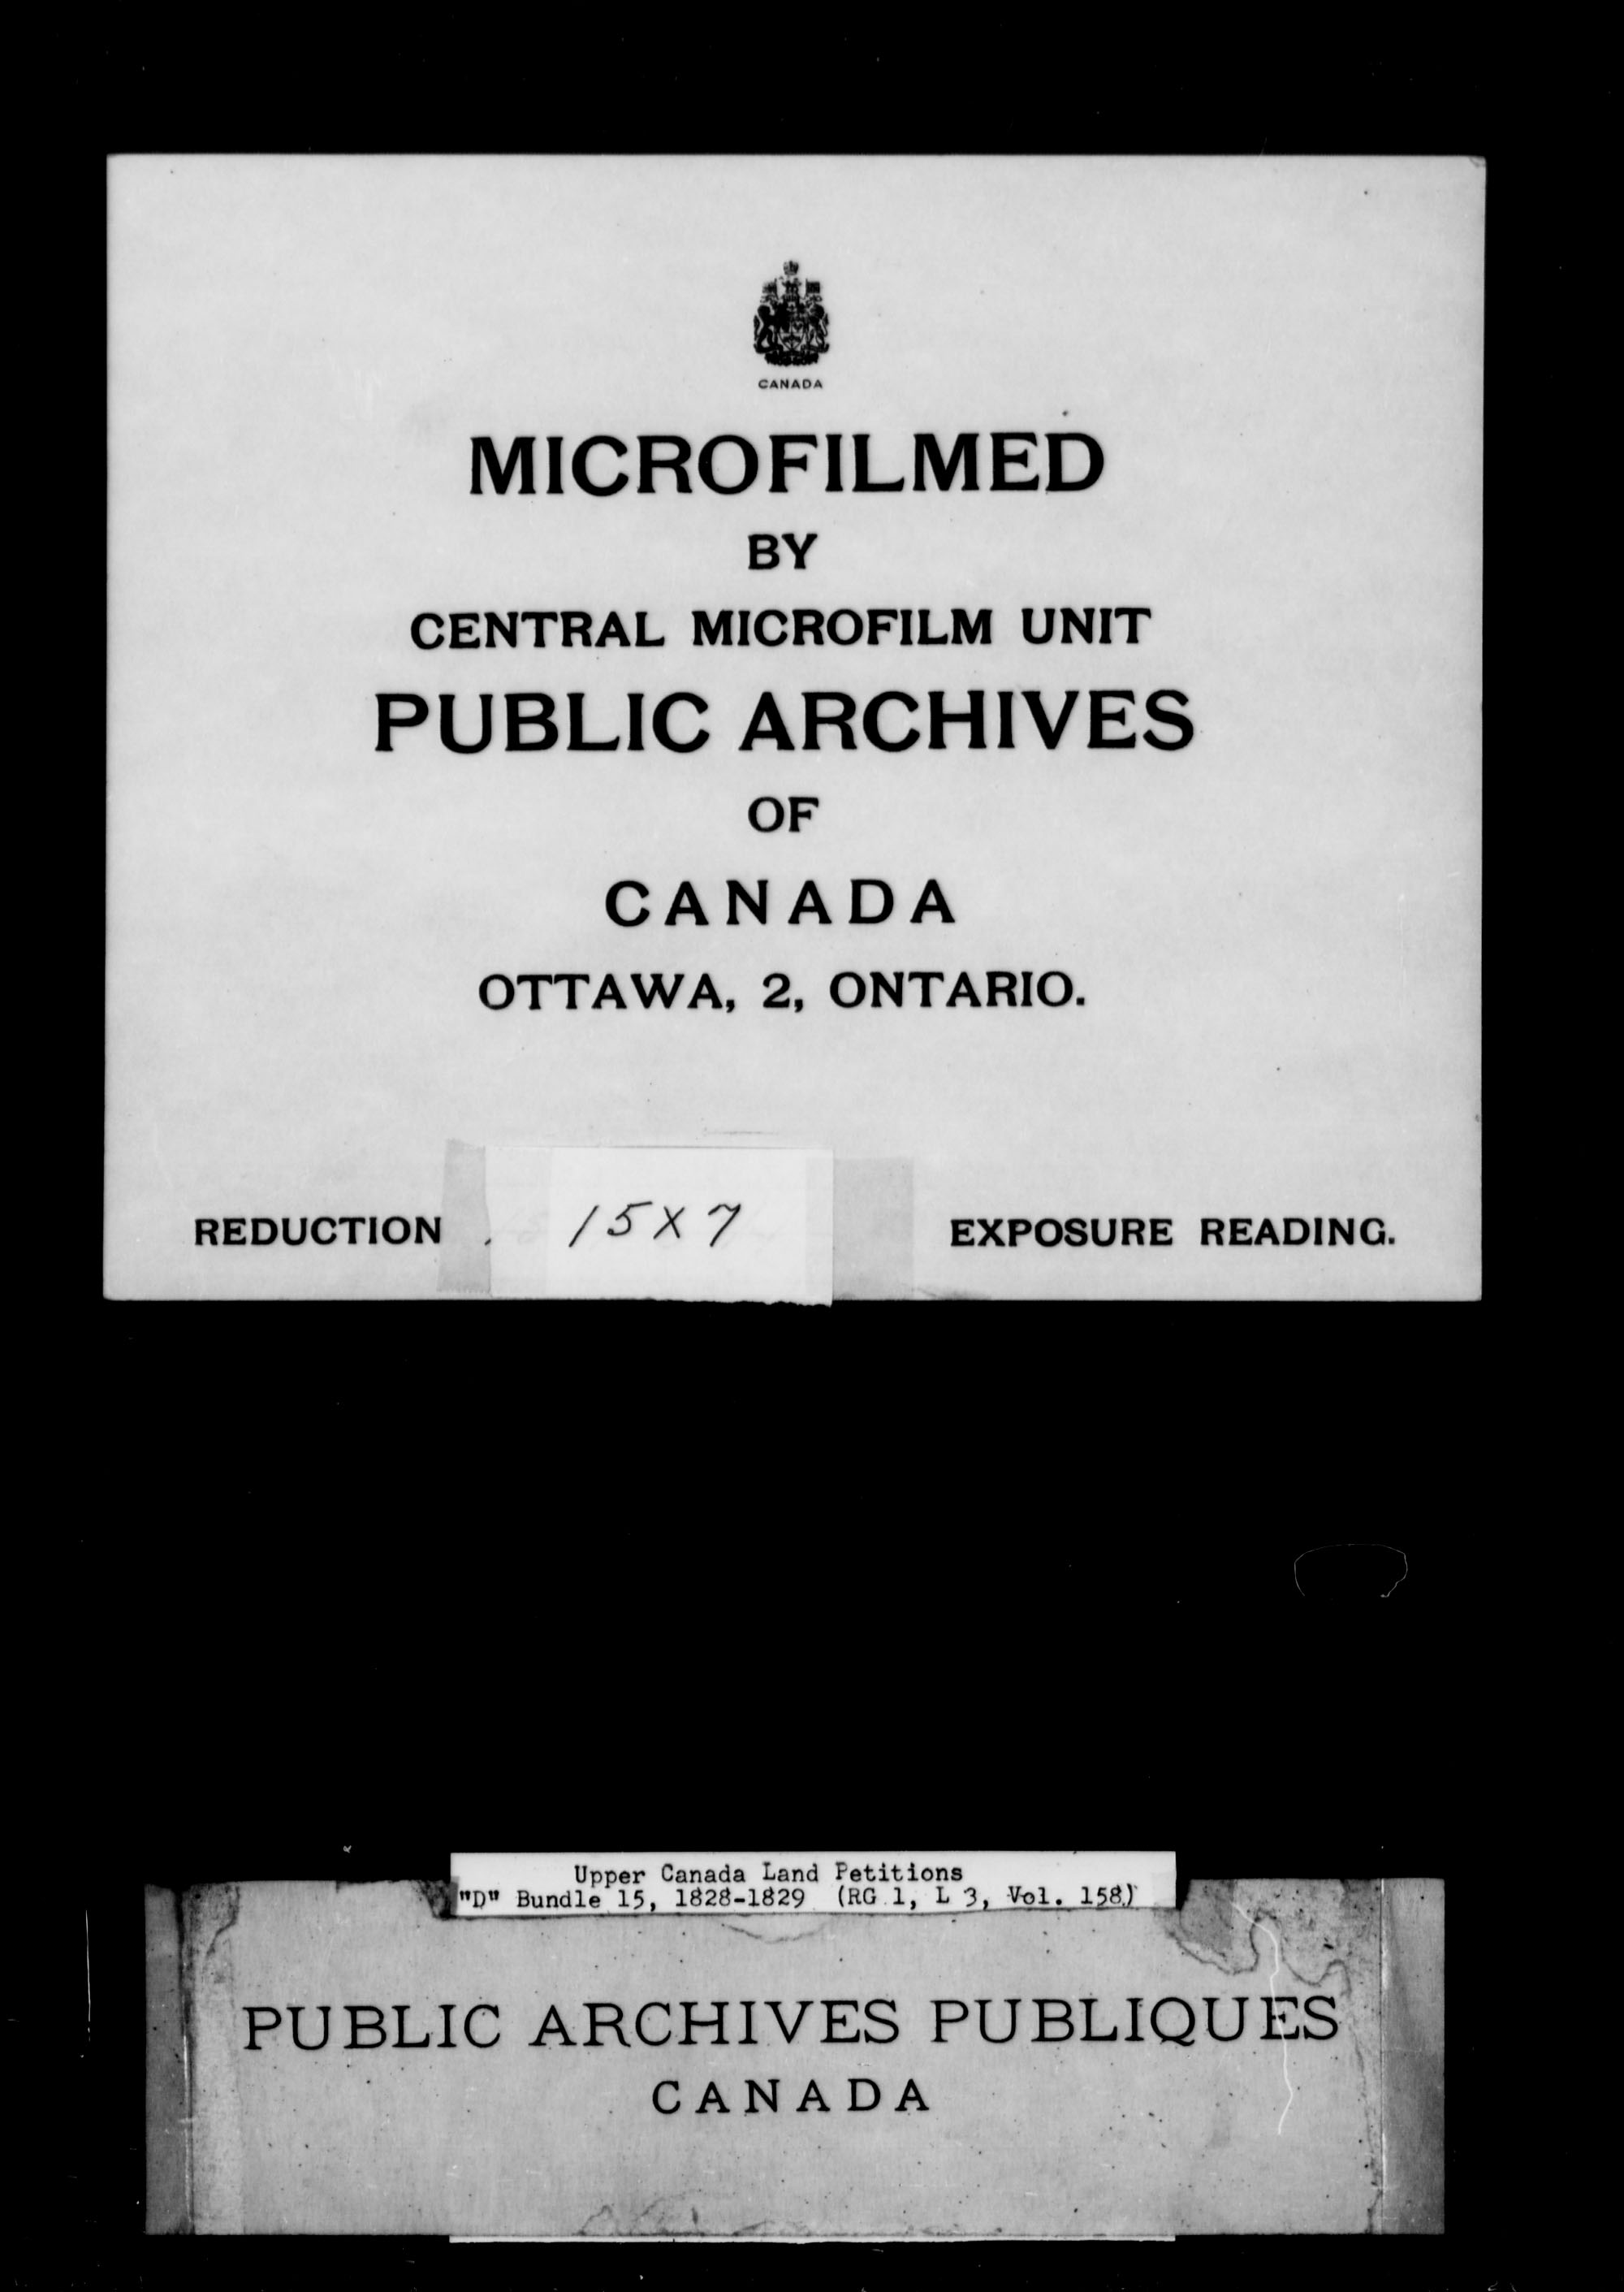 Title: Upper Canada Land Petitions (1763-1865) - Mikan Number: 205131 - Microform: c-1876